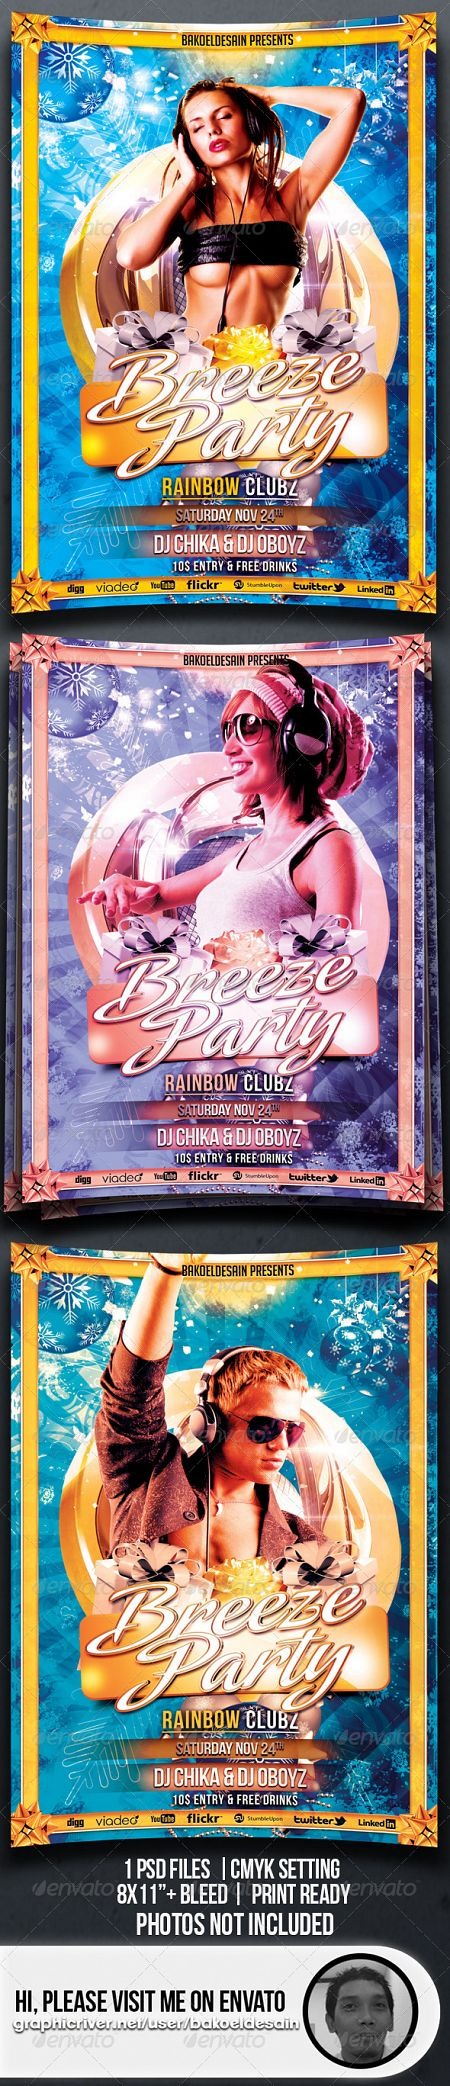 GraphicRiver - Breeze Party Flyer 3544699